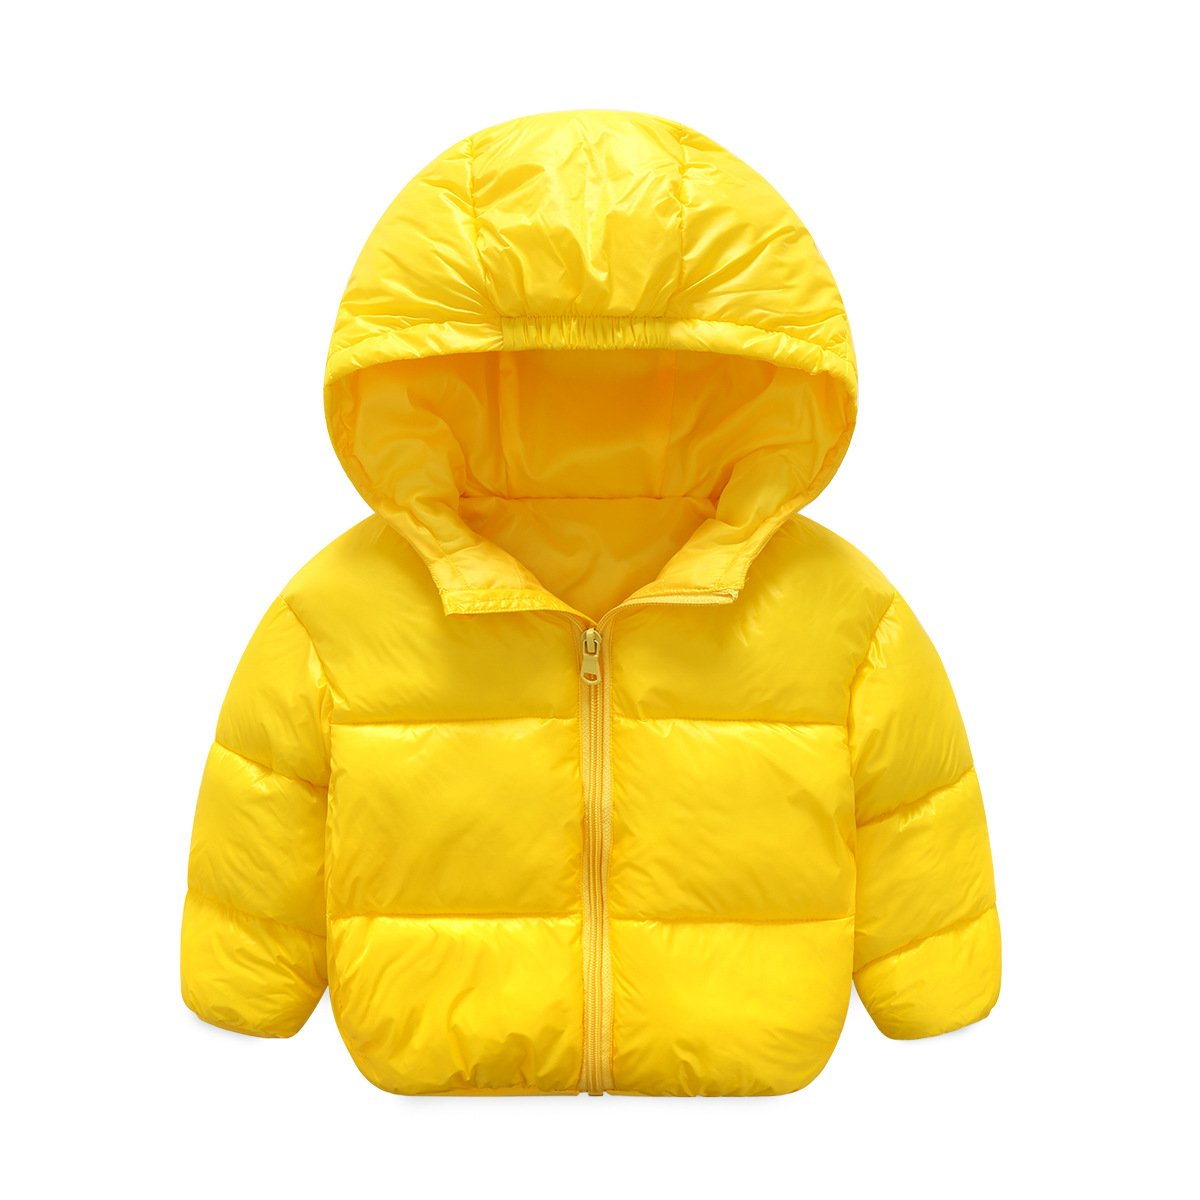 Baby Girls Boys Winter Lightweight Down Coat Hoodies Kids Candy Color Puffer Warm Coat Outwear Jacket (5-6 Years old, Yellow)